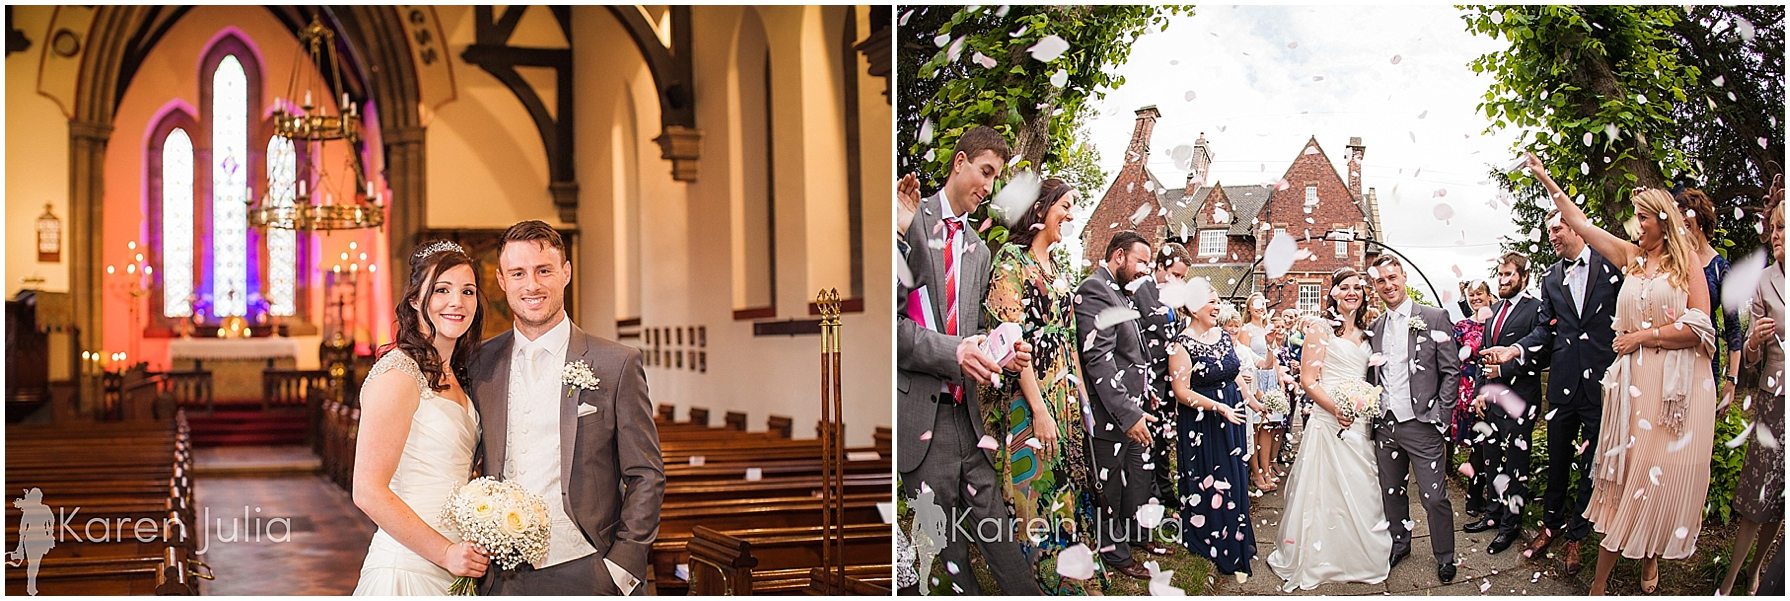 Cheshire Wedding Photography Smallwood village church